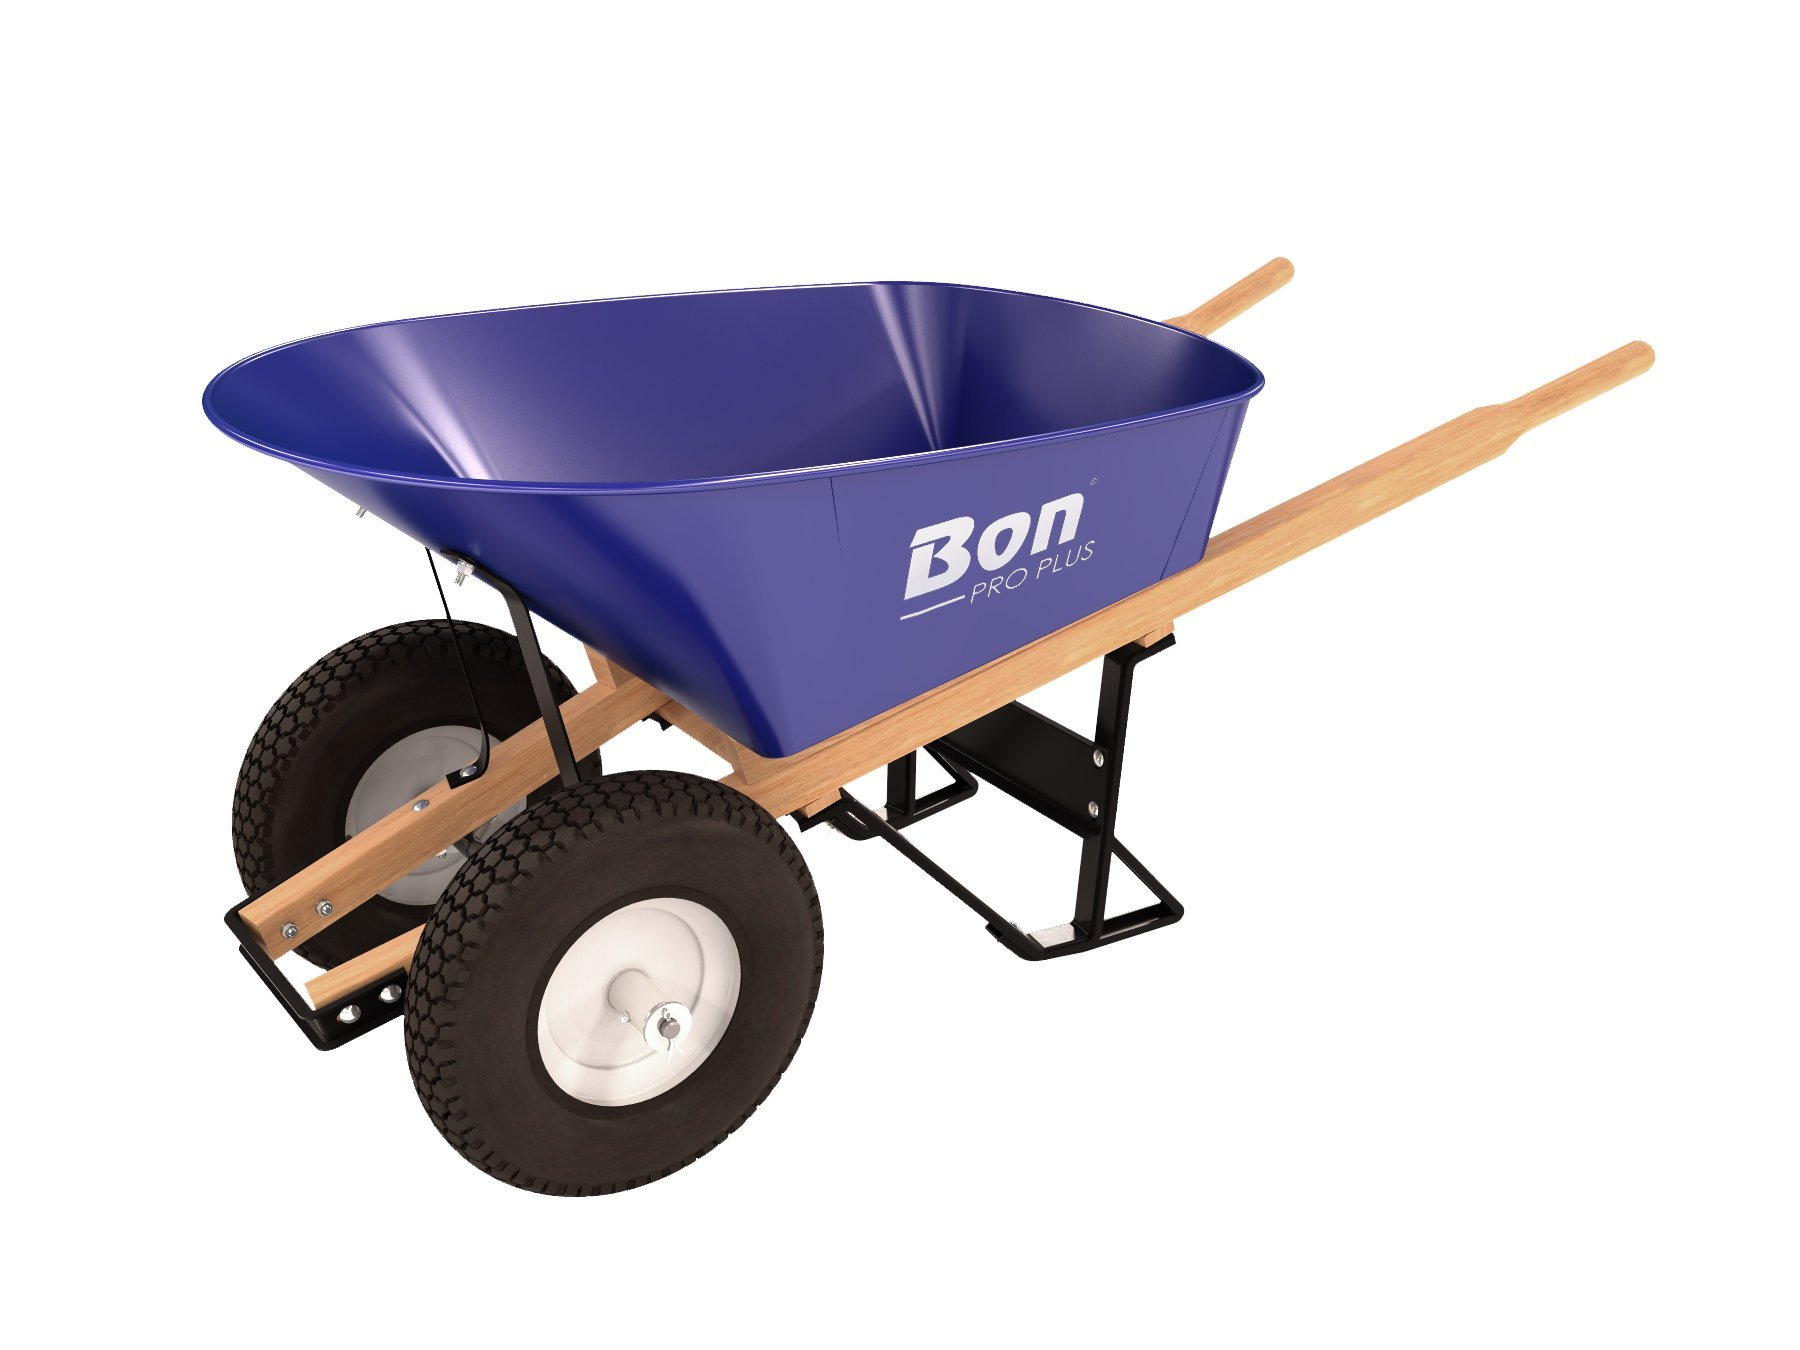 Bon 11 676 Premium Contractor Grade Steel Double Wheel Wheelbarrow with Wood Hande and Knobby Tire, 6 Cubic Feet